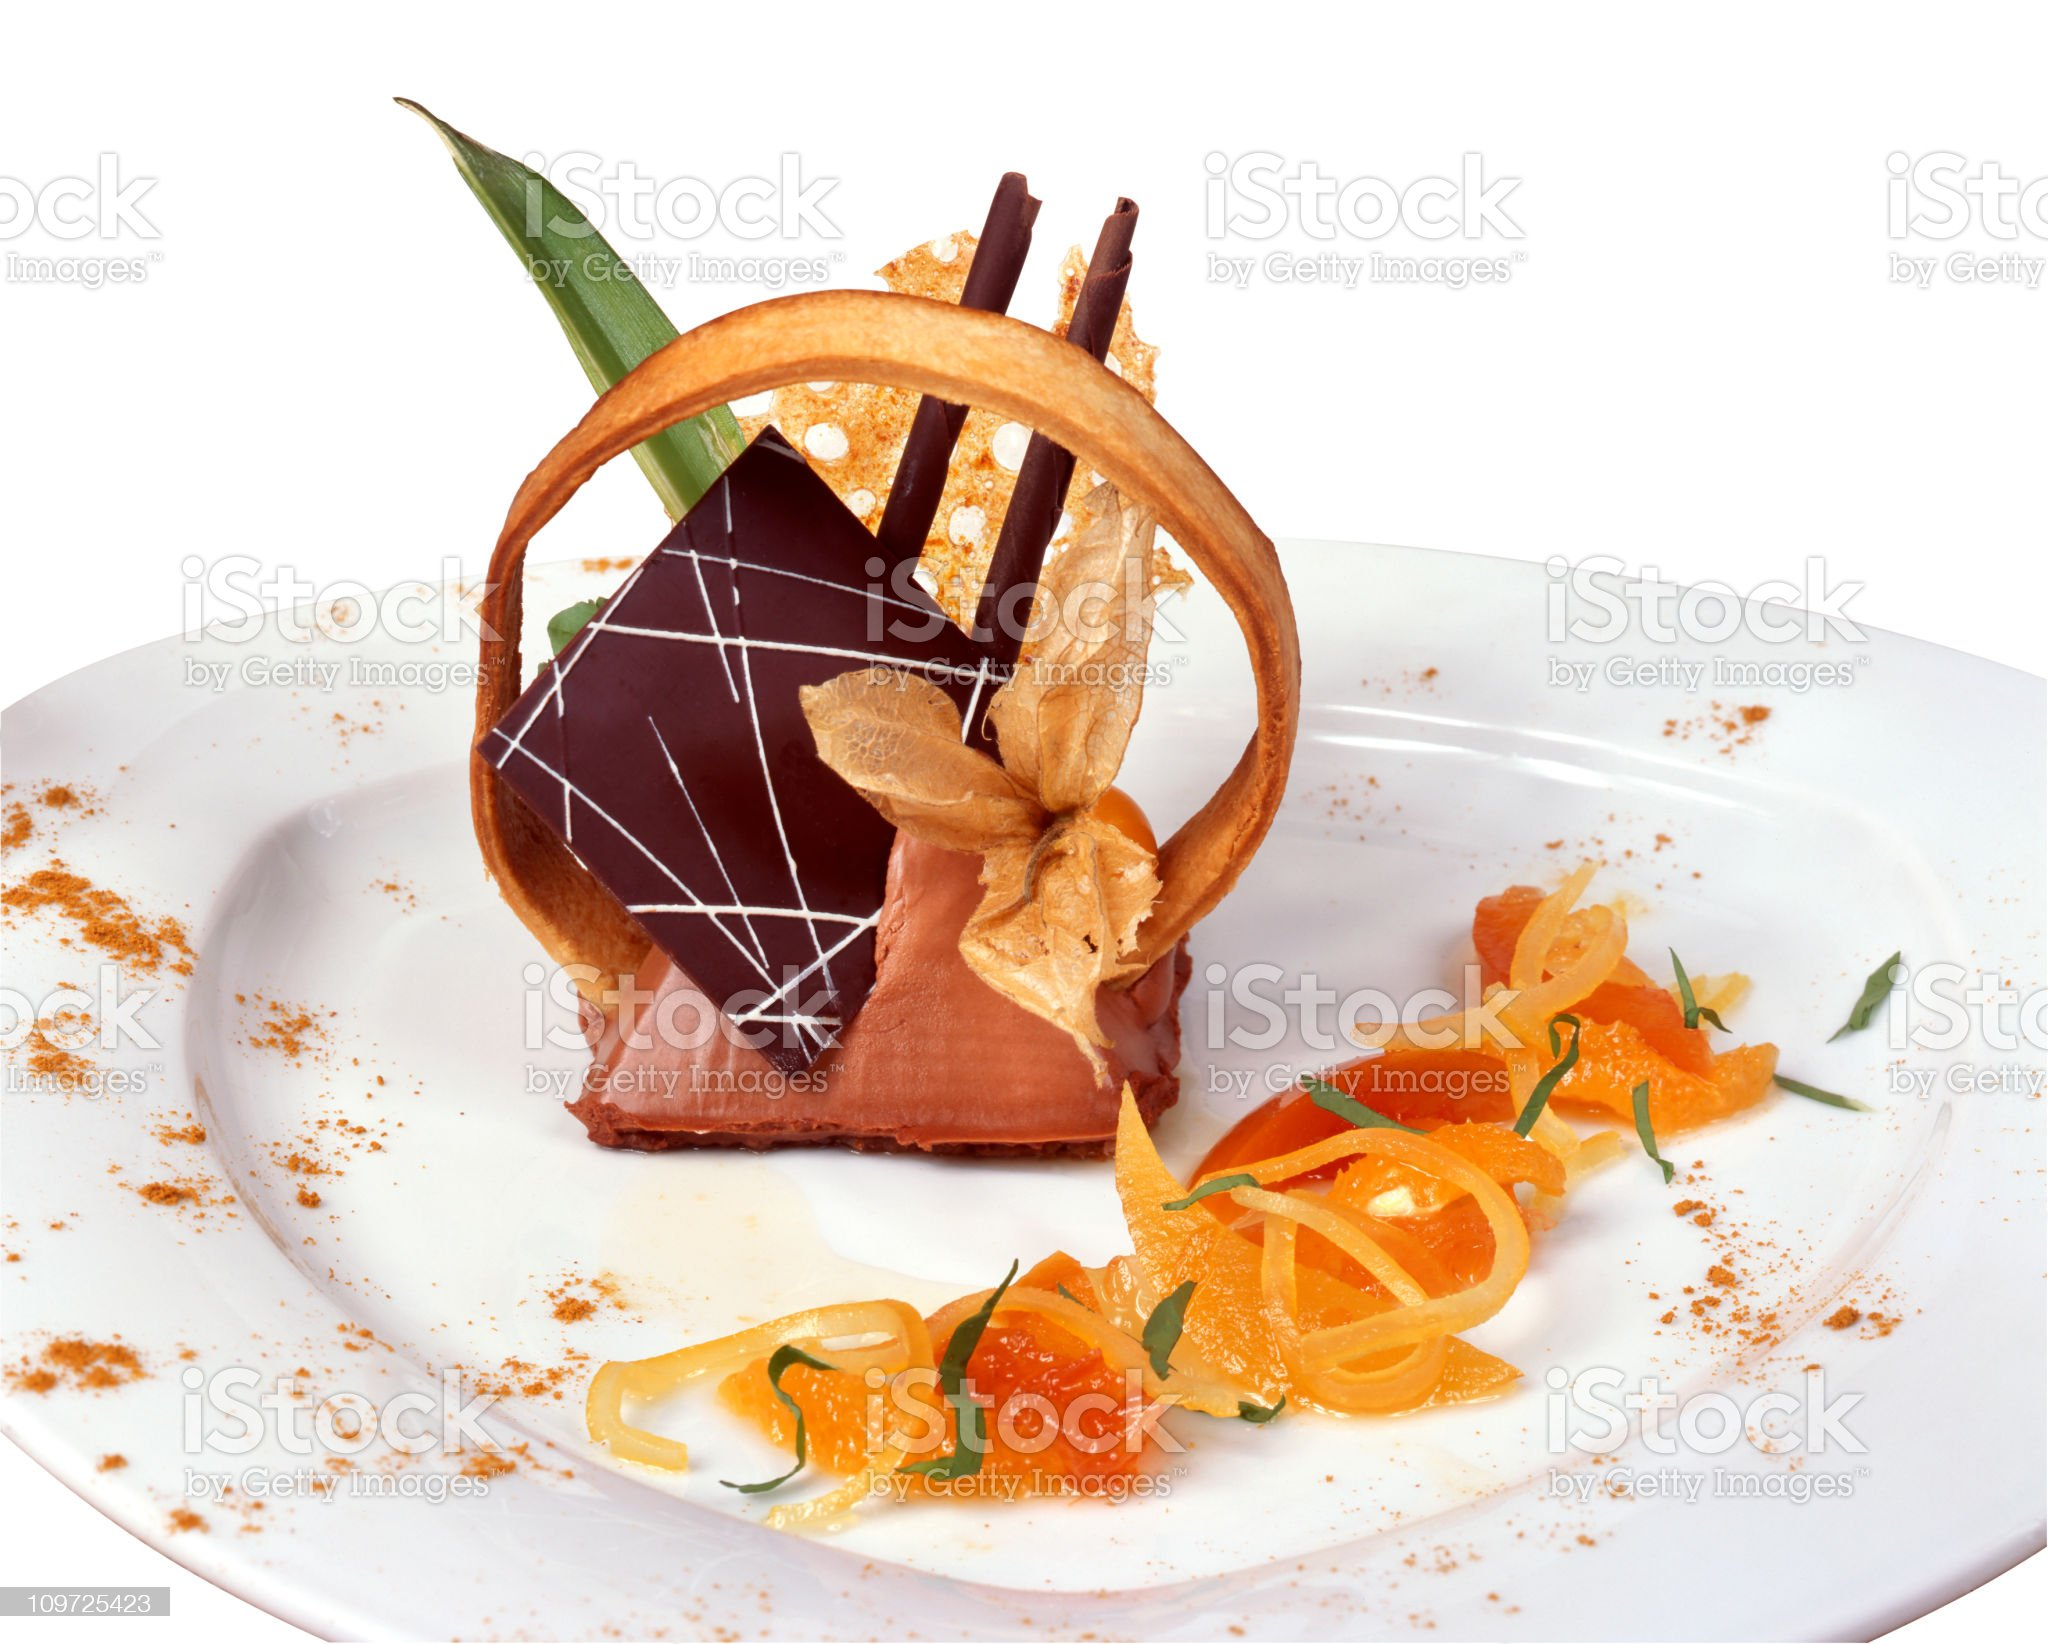 Elegant mousse with many garnishes on a white plate royalty-free stock photo